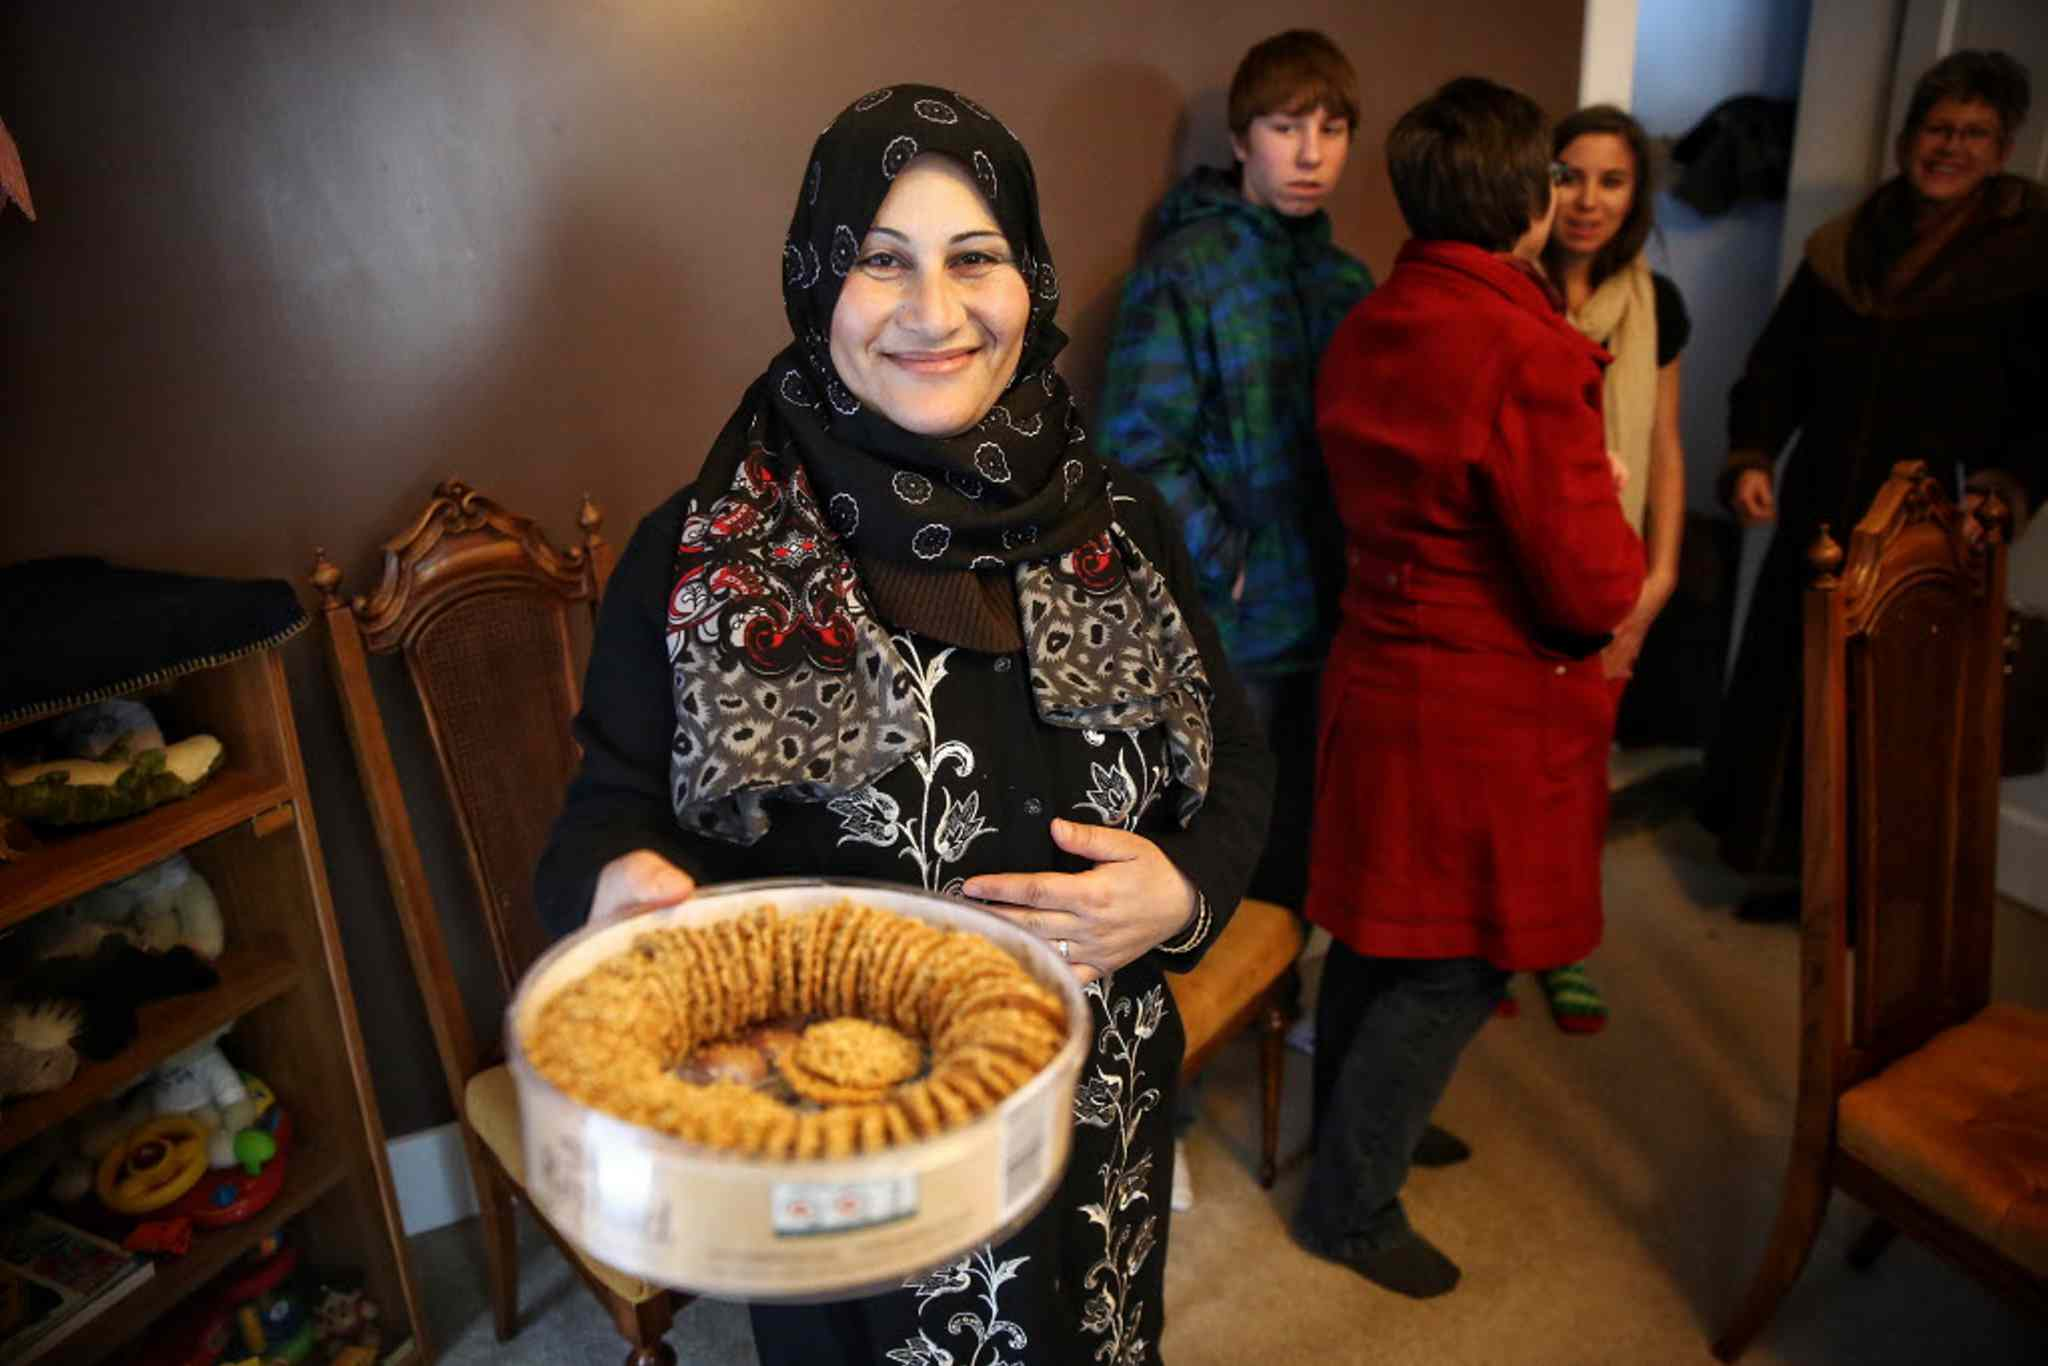 A very happy Ahlam Dib serves cookies and coffee to the crowd of volunteers that arrived at her new home in Altona to welcome her and her husband and their seven children.